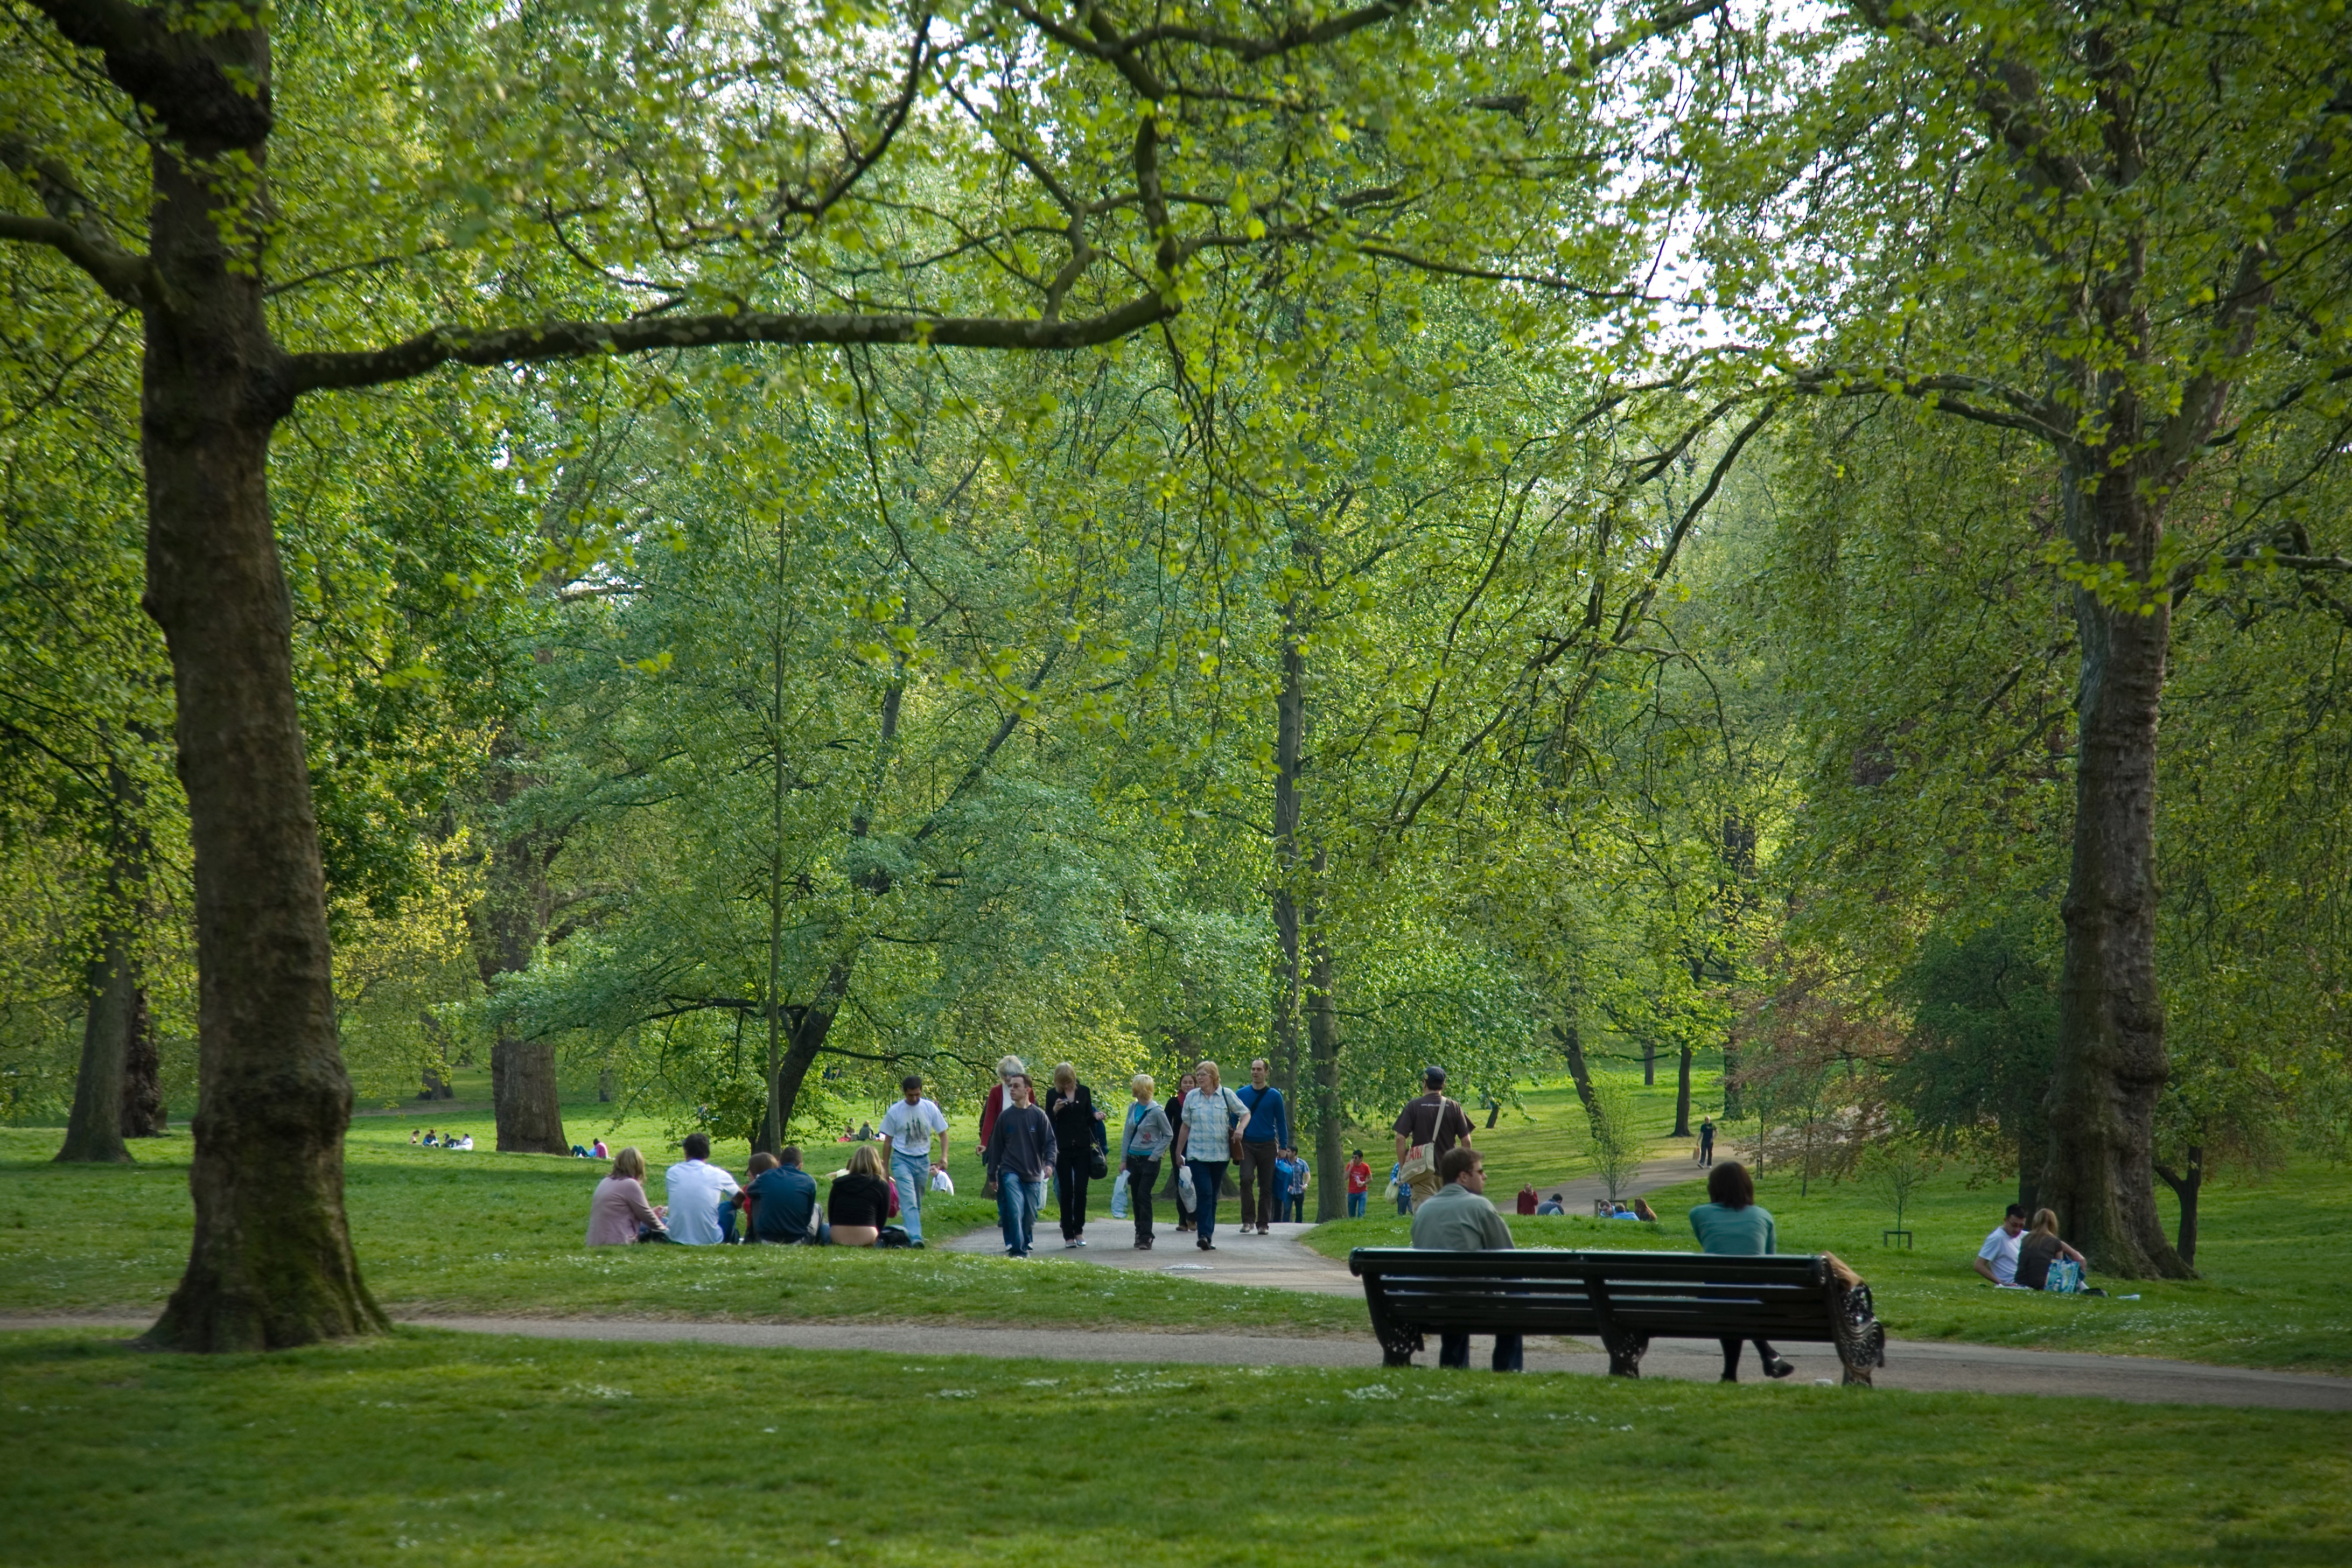 File:Green Park, London - April 2007.jpg - Wikipedia, the free ...